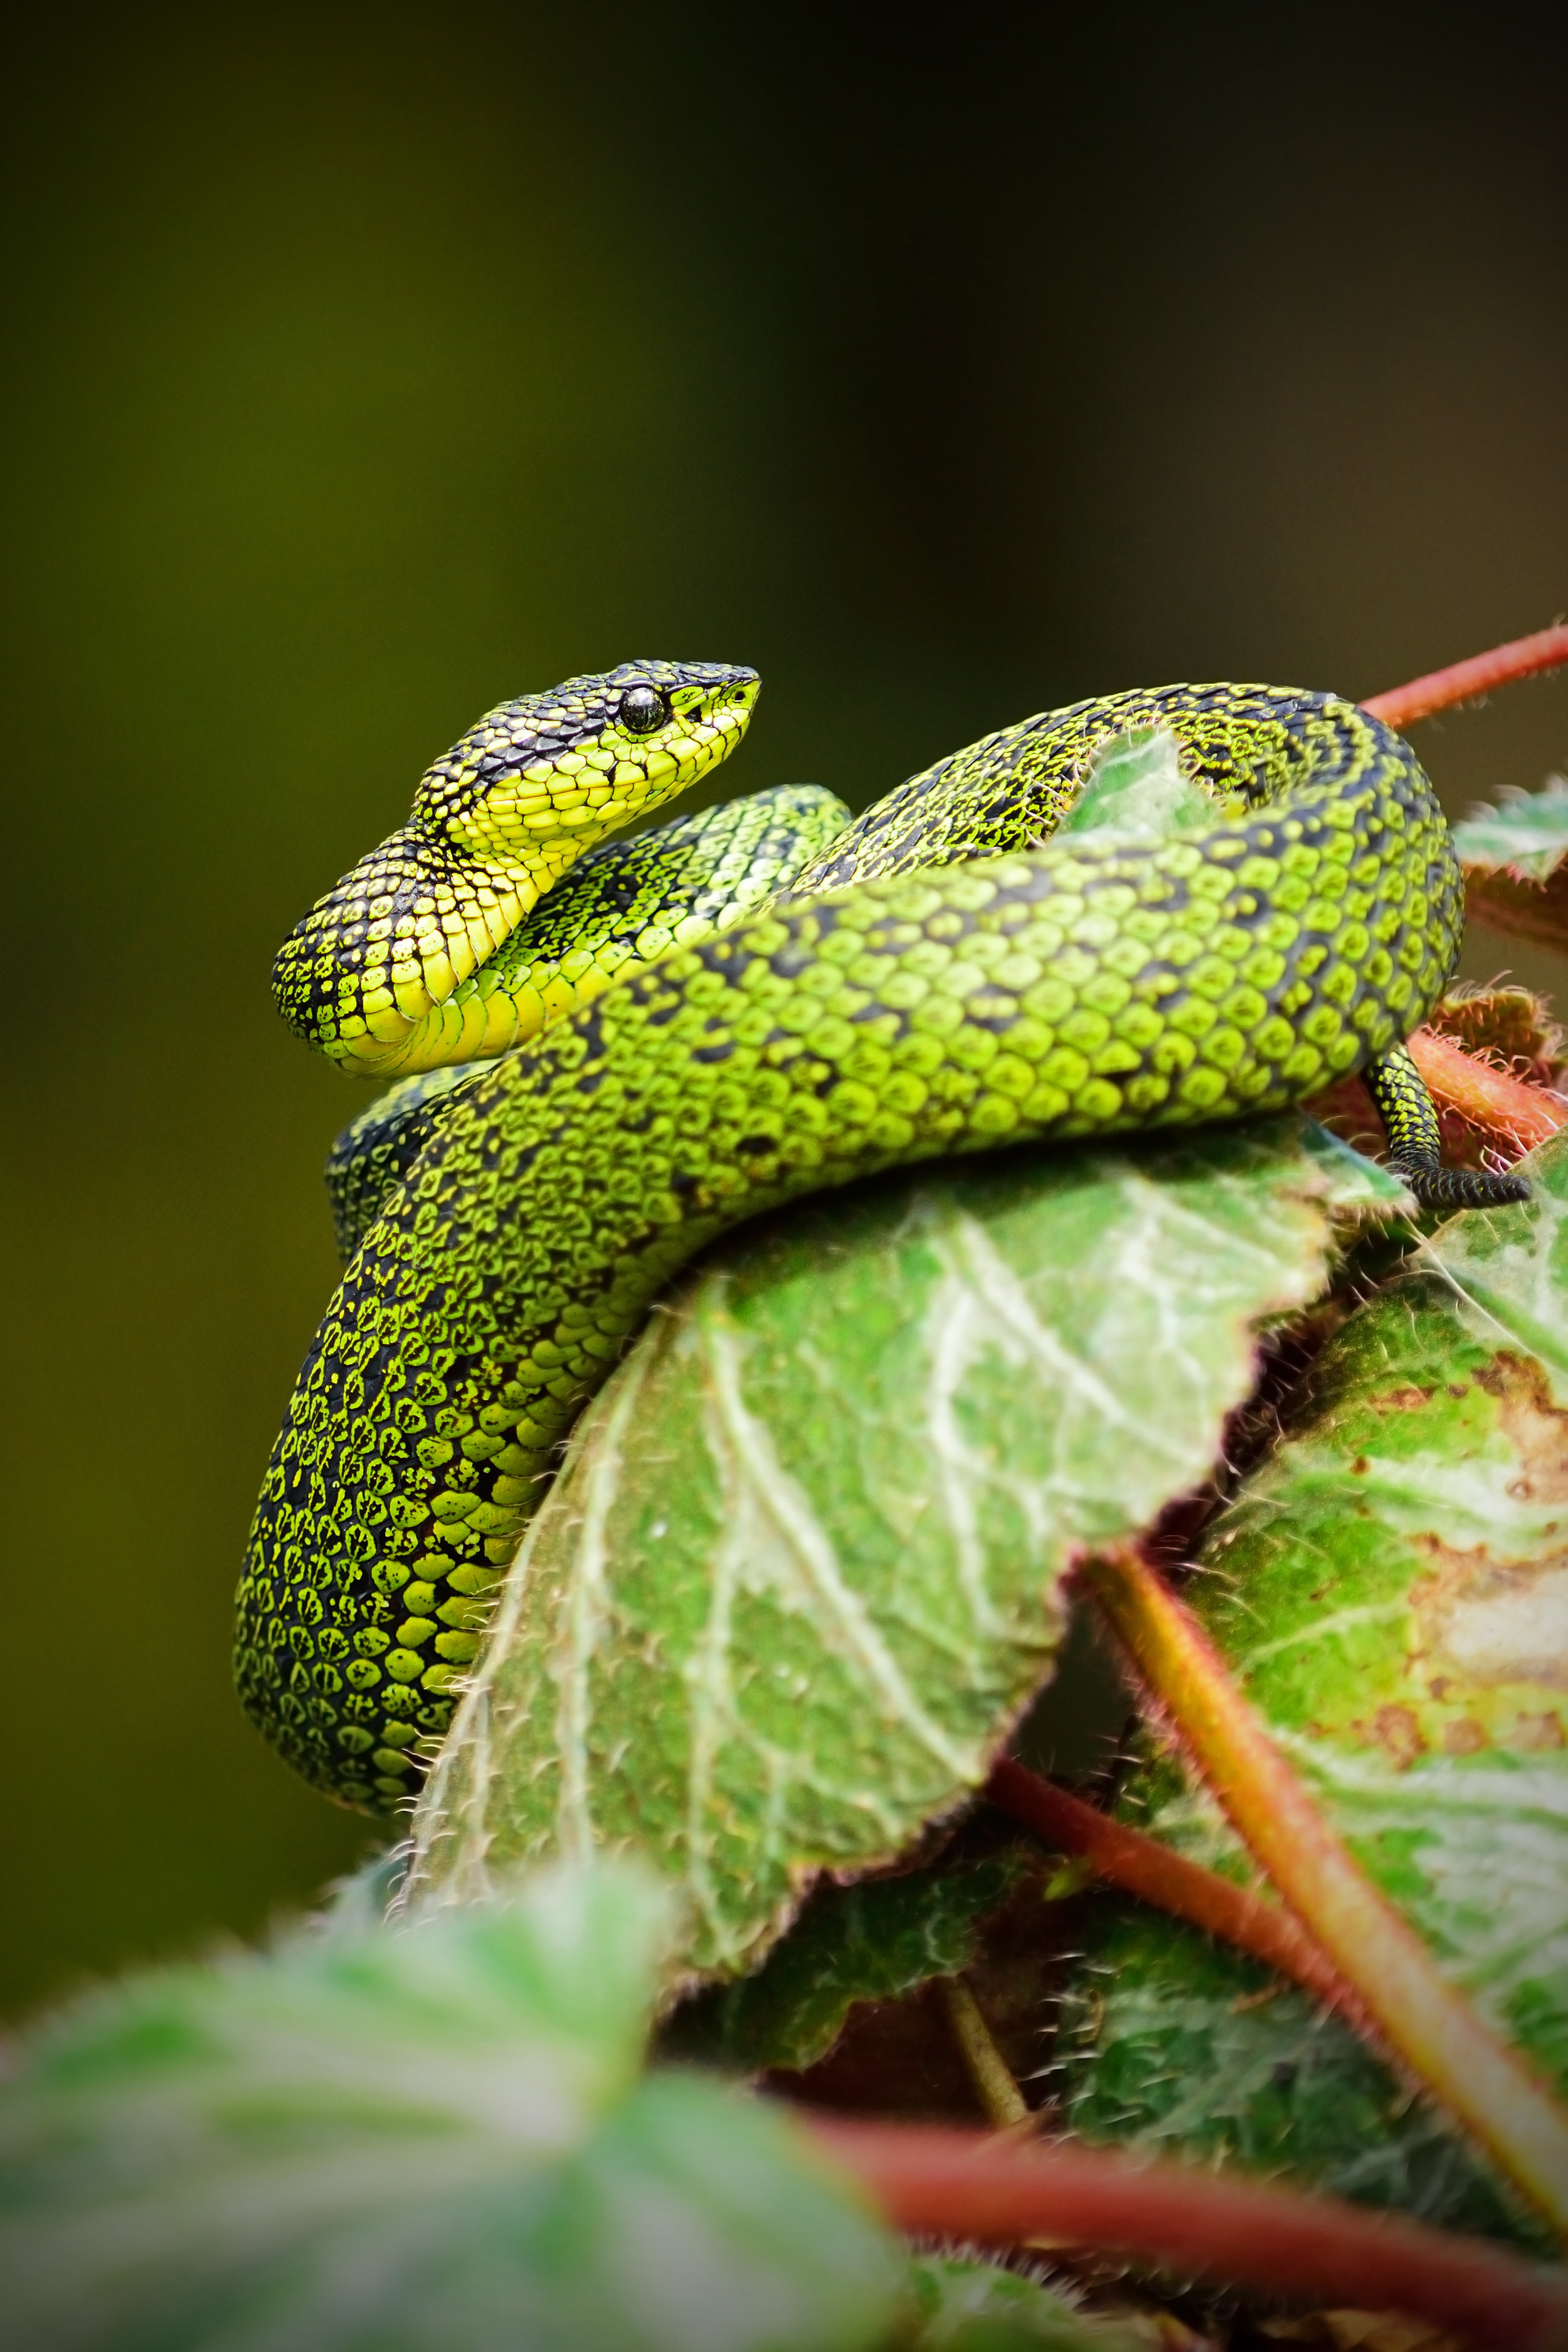 Researchers trace Coronavirus outbreak in China to snakes | Vet Candy